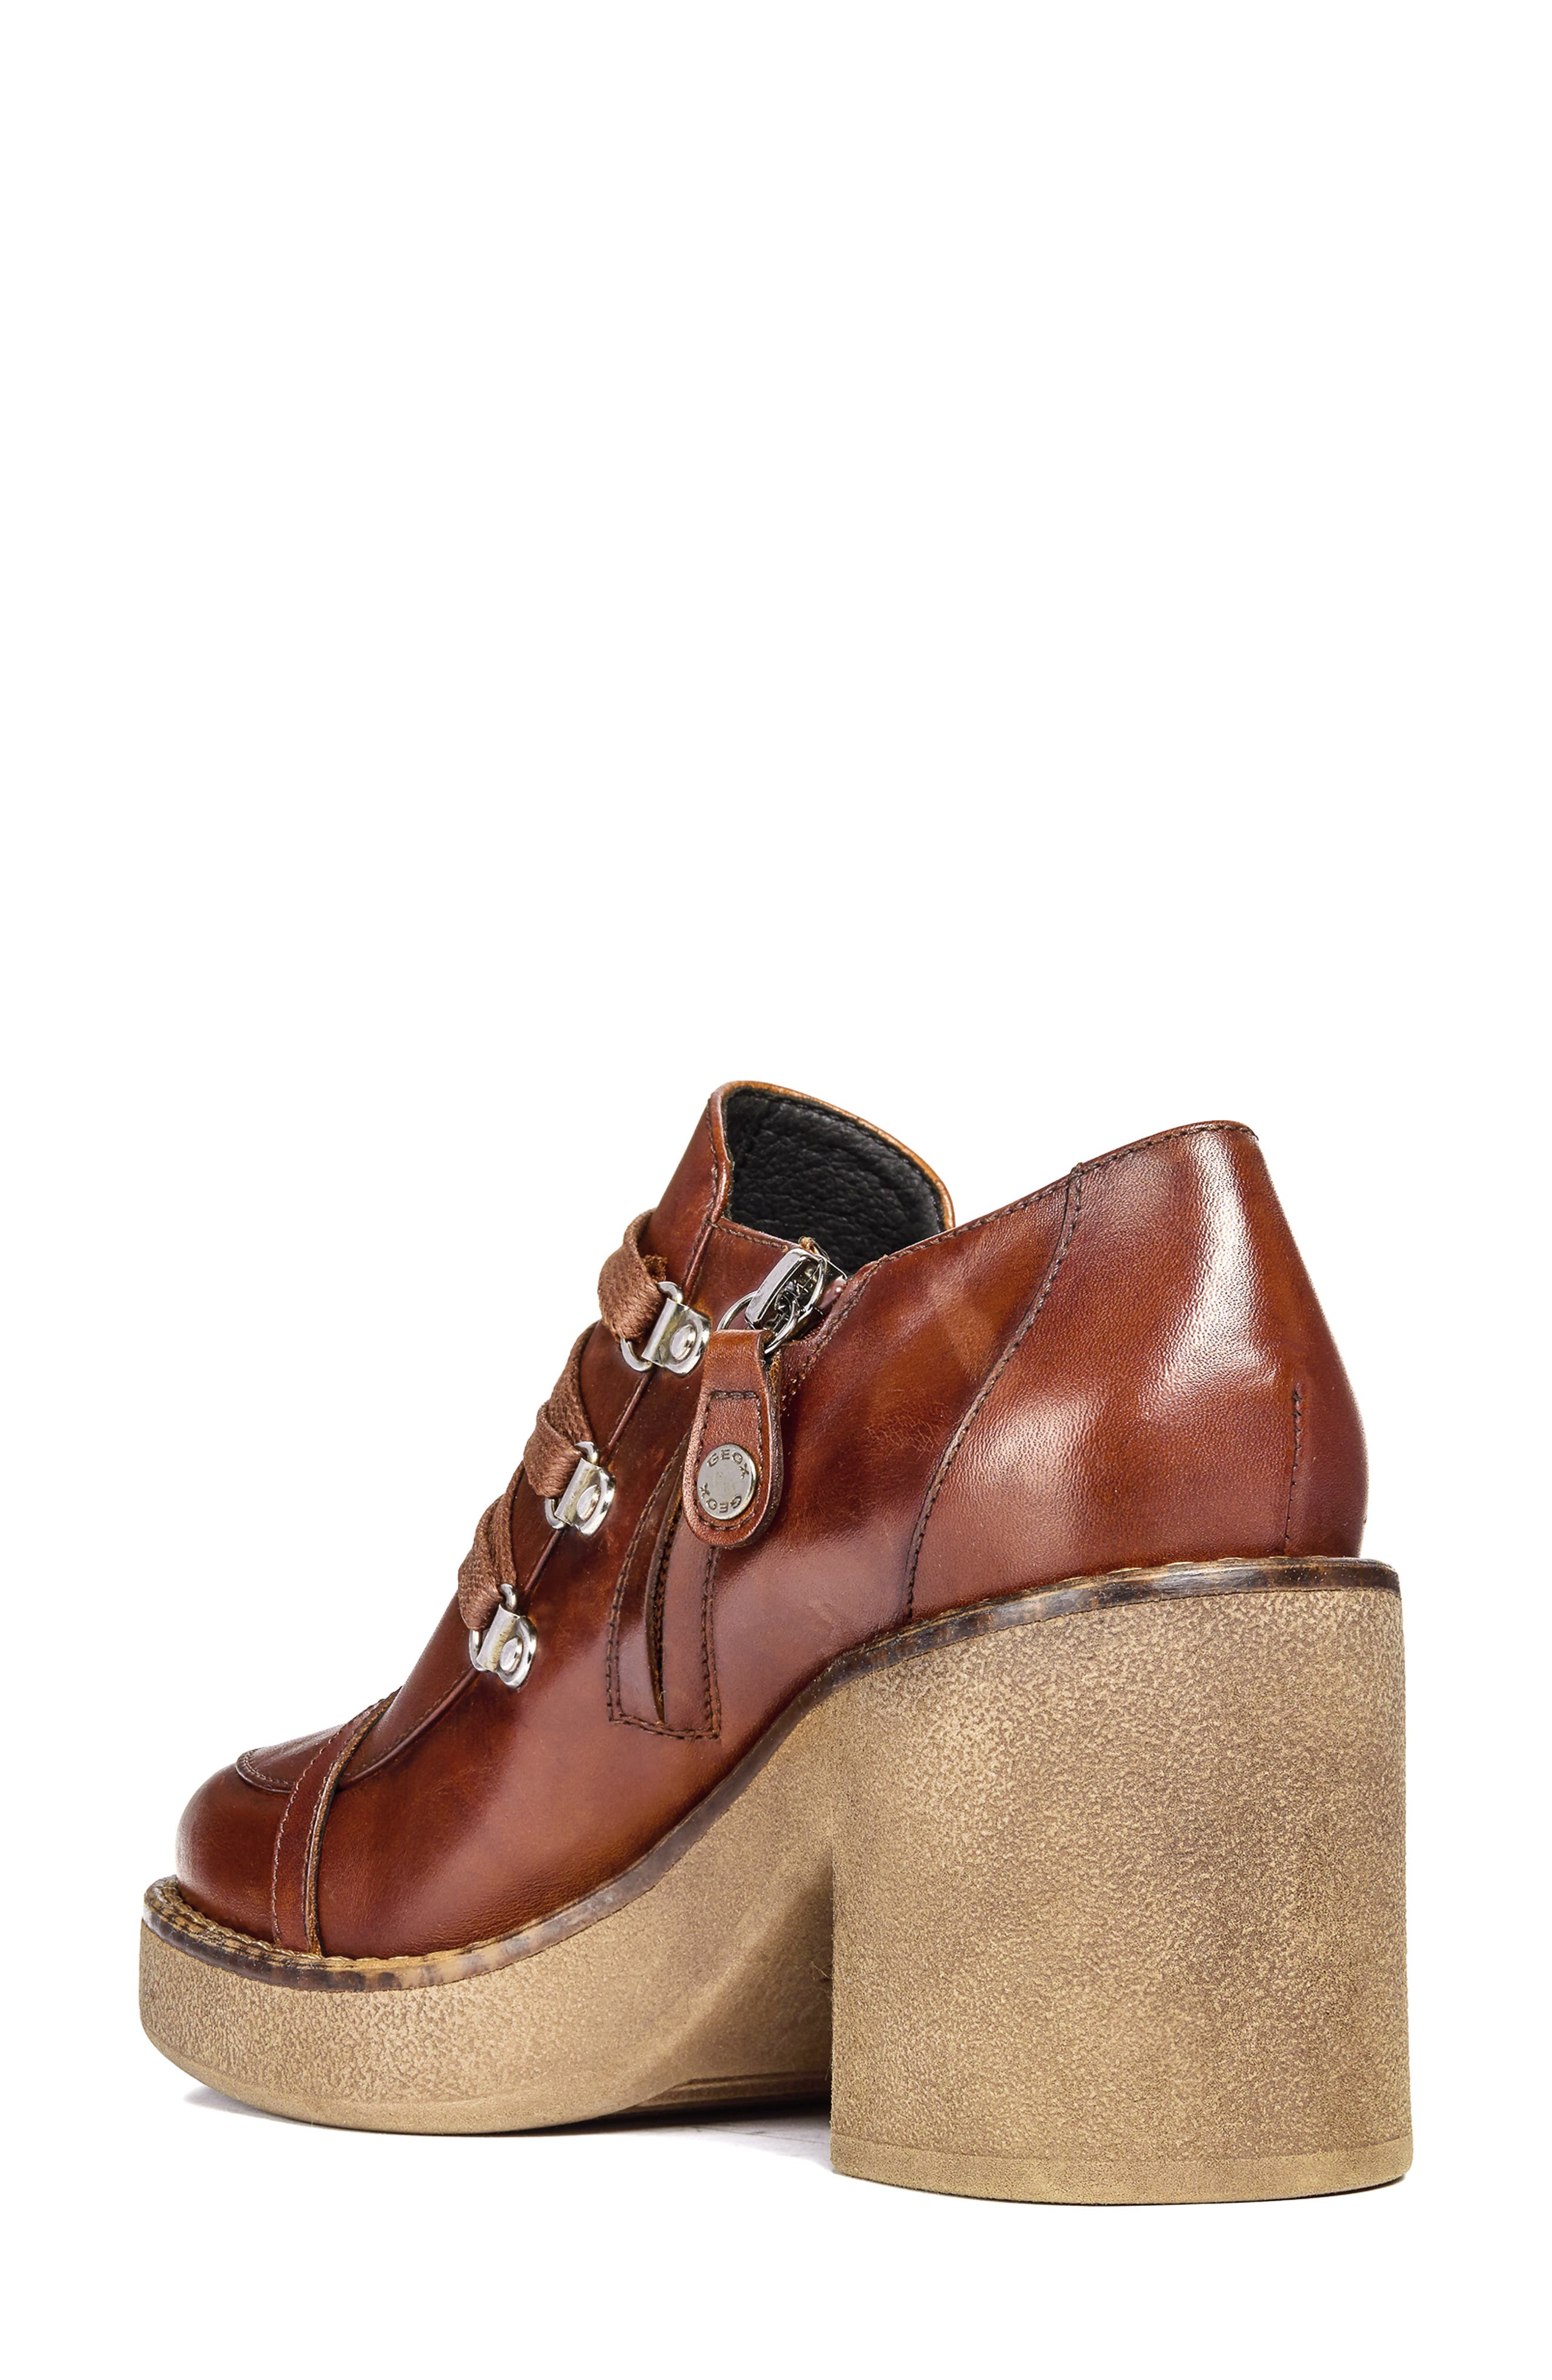 Adrya Bootie,                             Alternate thumbnail 2, color,                             BROWN LEATHER